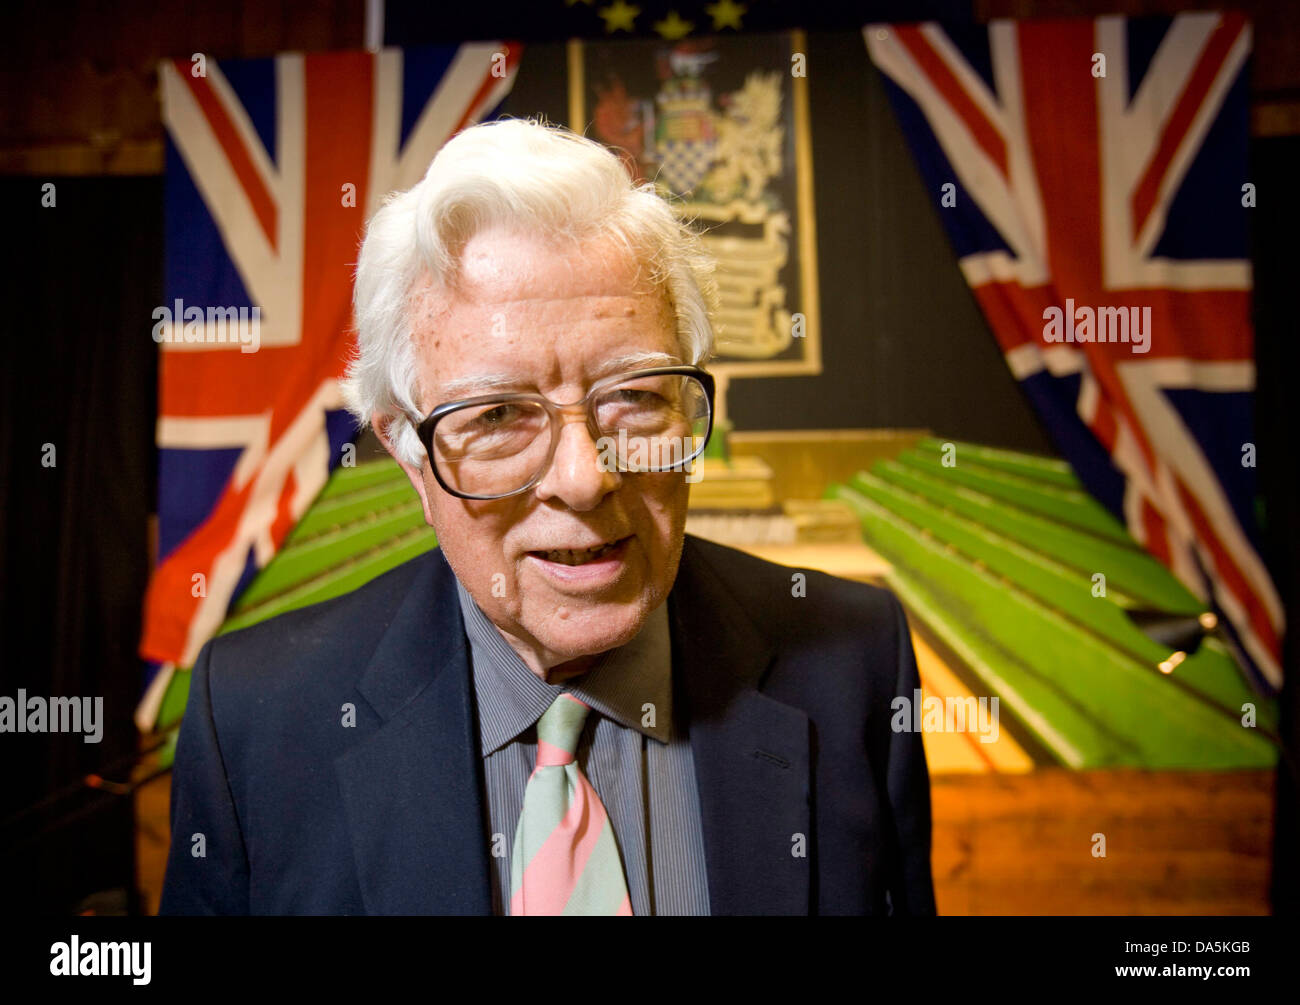 Lord Geoffrey Howe ( Chancellor of the Exchequer in Mrs Thatcher's Government)at a talk in Wootton Oxfordhsire. - Stock Image